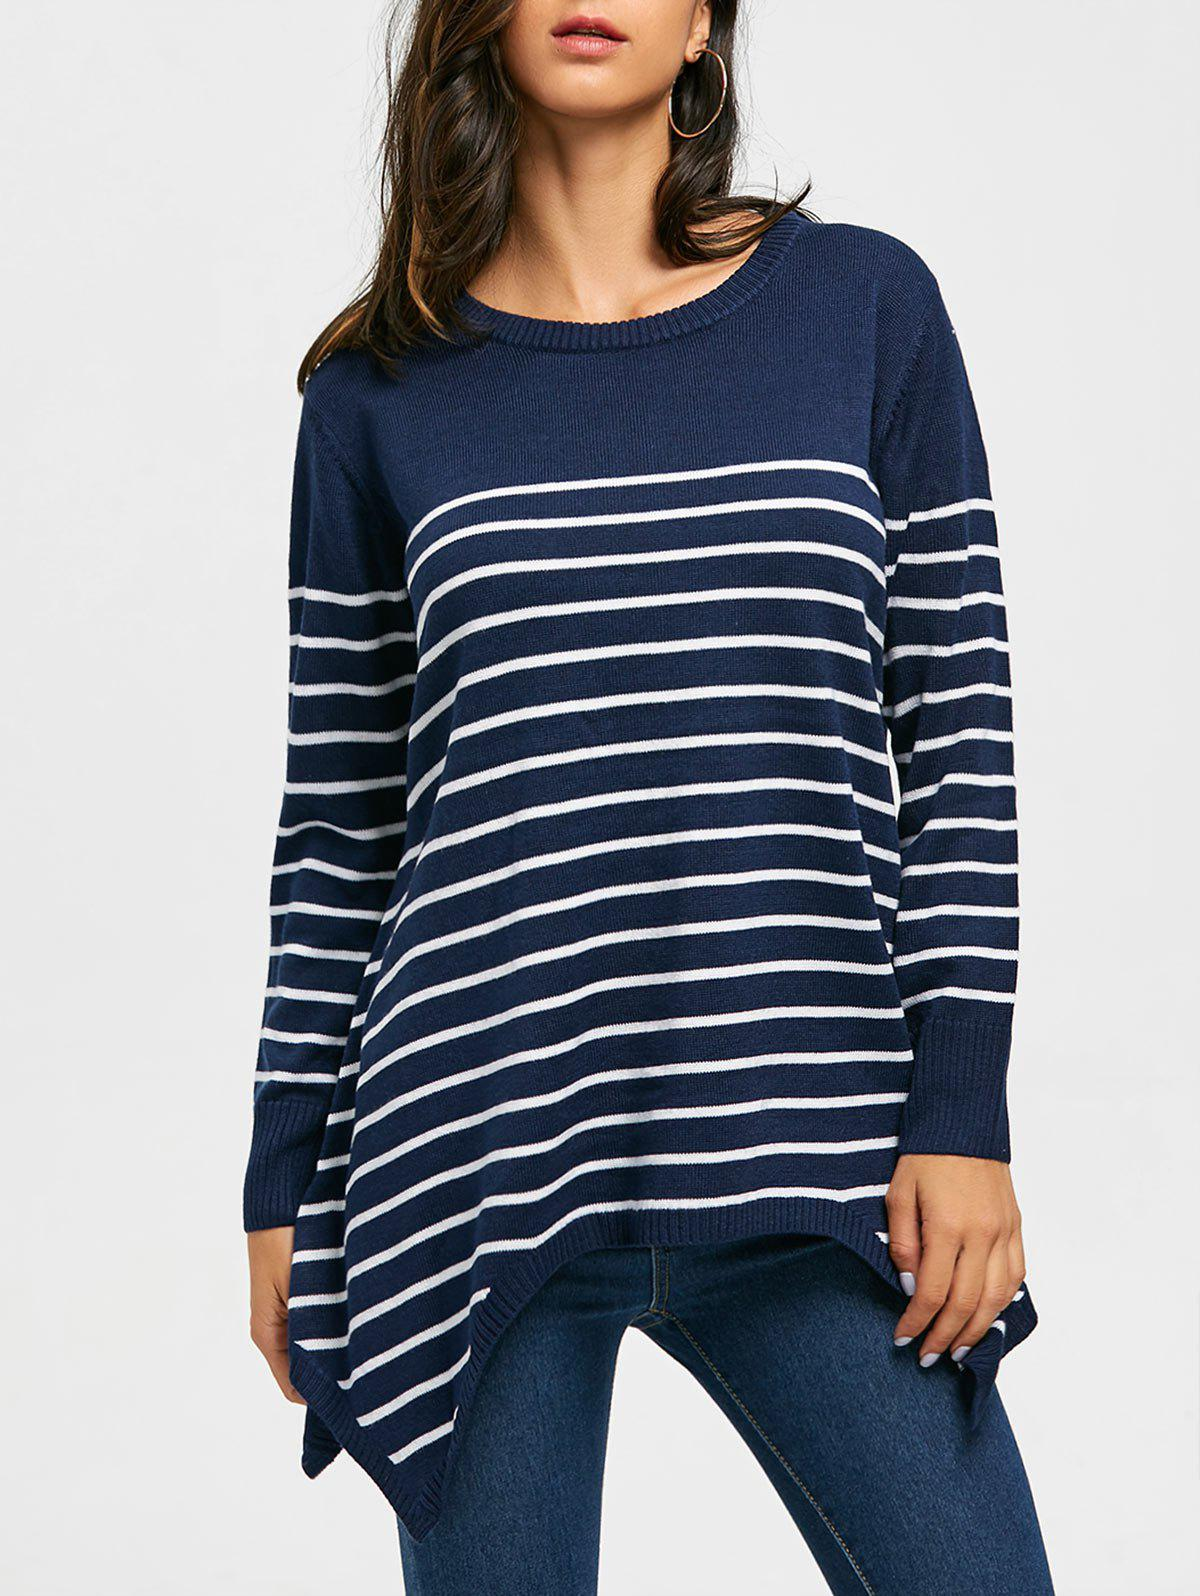 Striped Loose Fitting Asymmetrical Knitwear - BLUE L